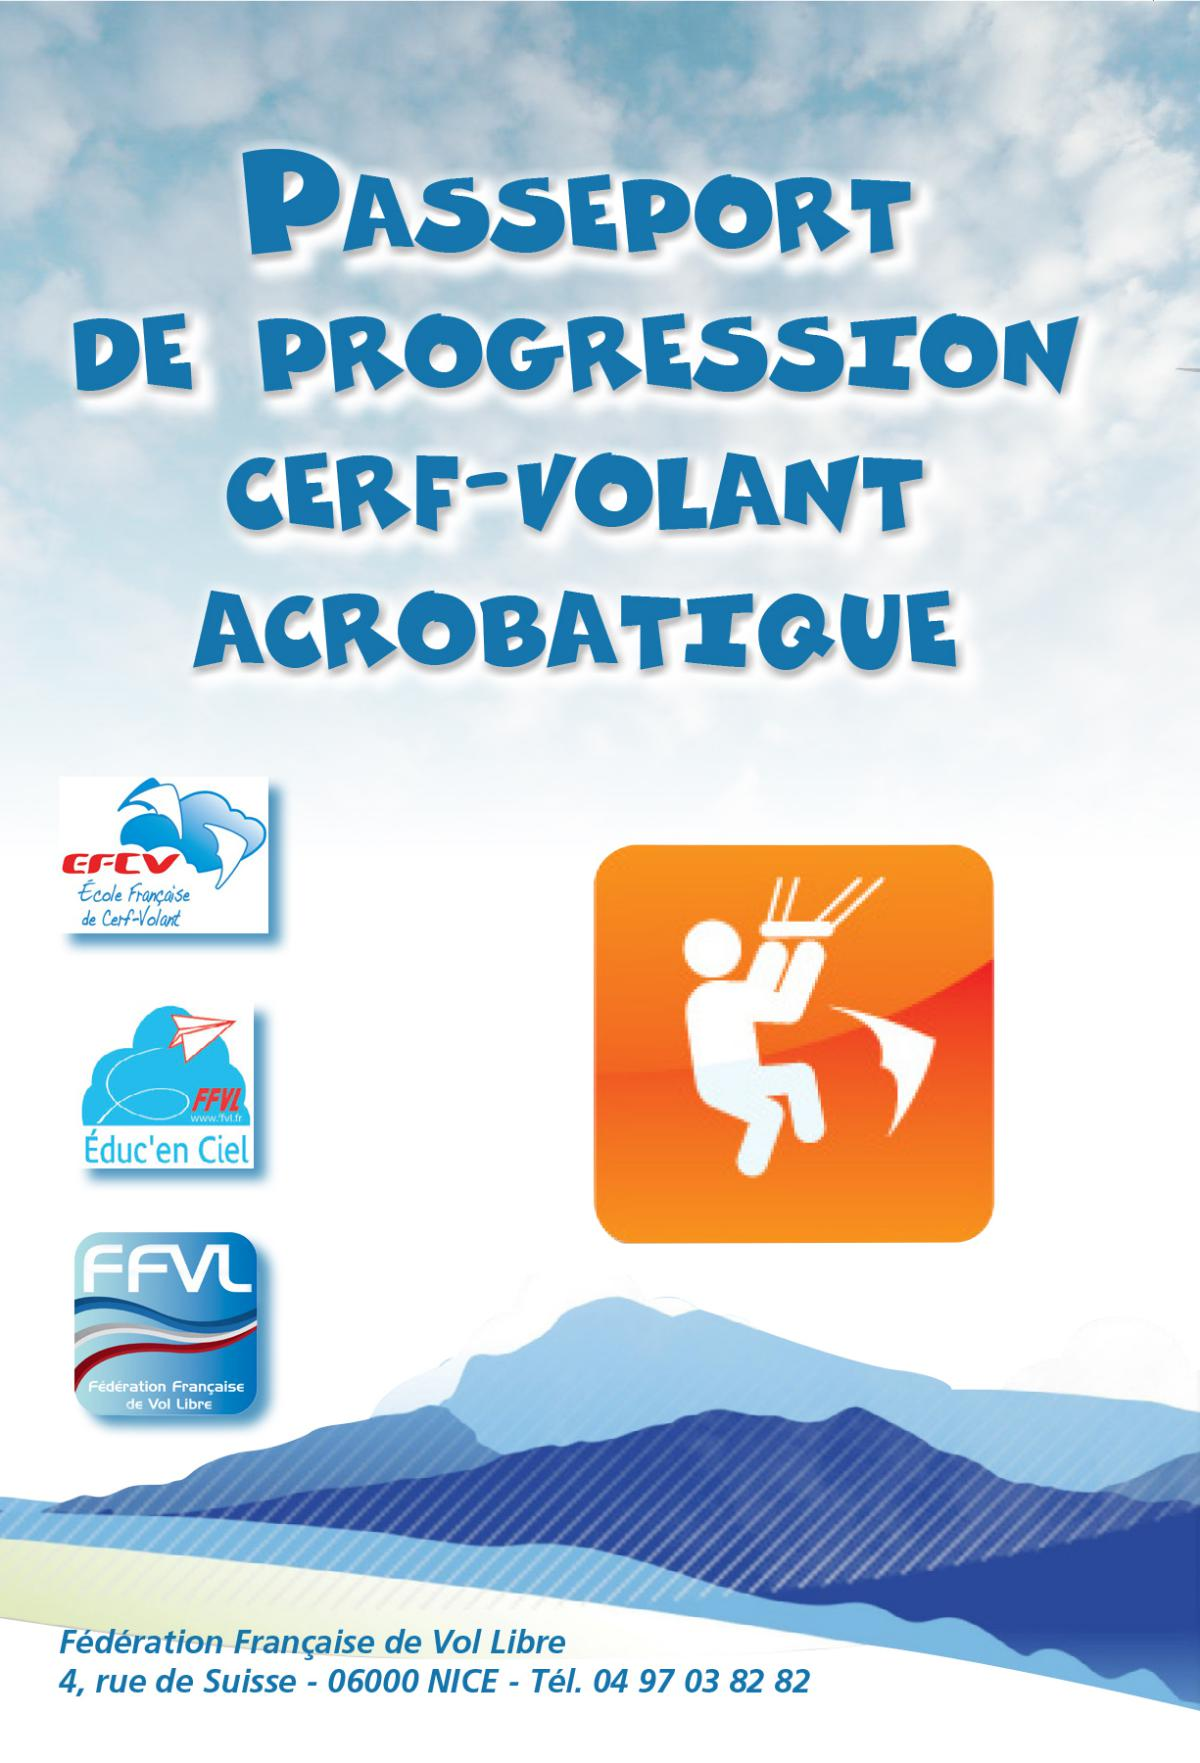 Passeport de progression cerf-volant acrobatique